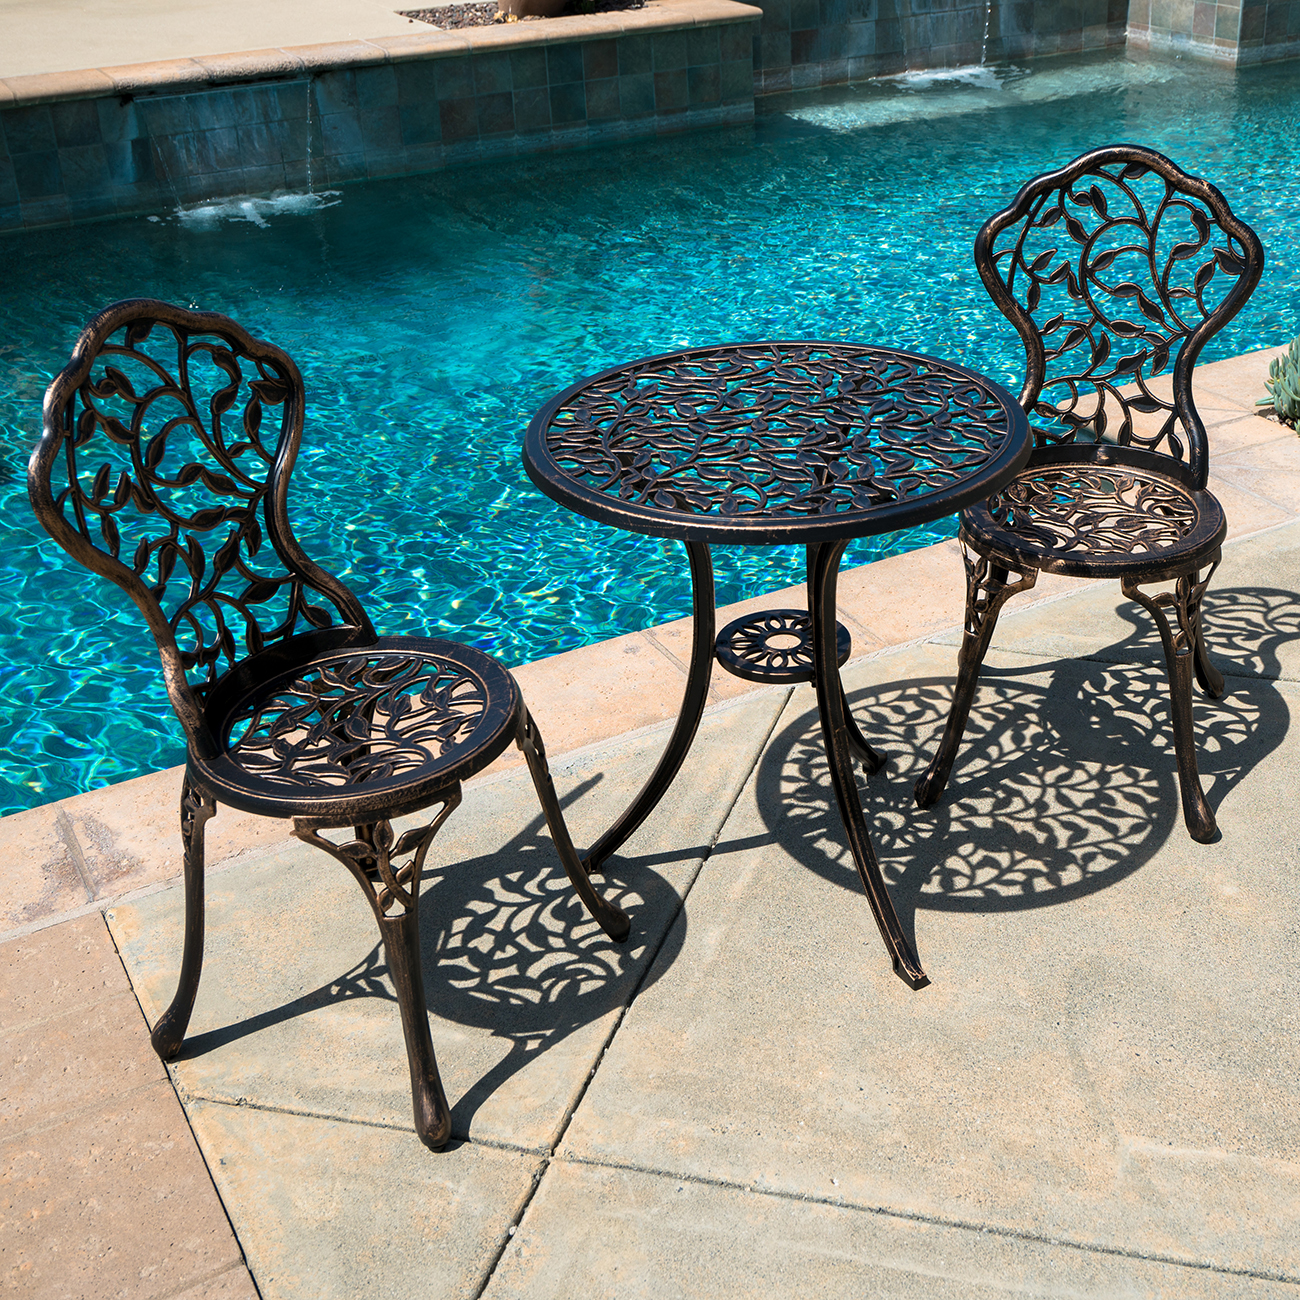 Cast Aluminum Patio Furniture Heart Pattern: 3PC Bistro Set Patio Table Chairs Ivory Furniture Balcony